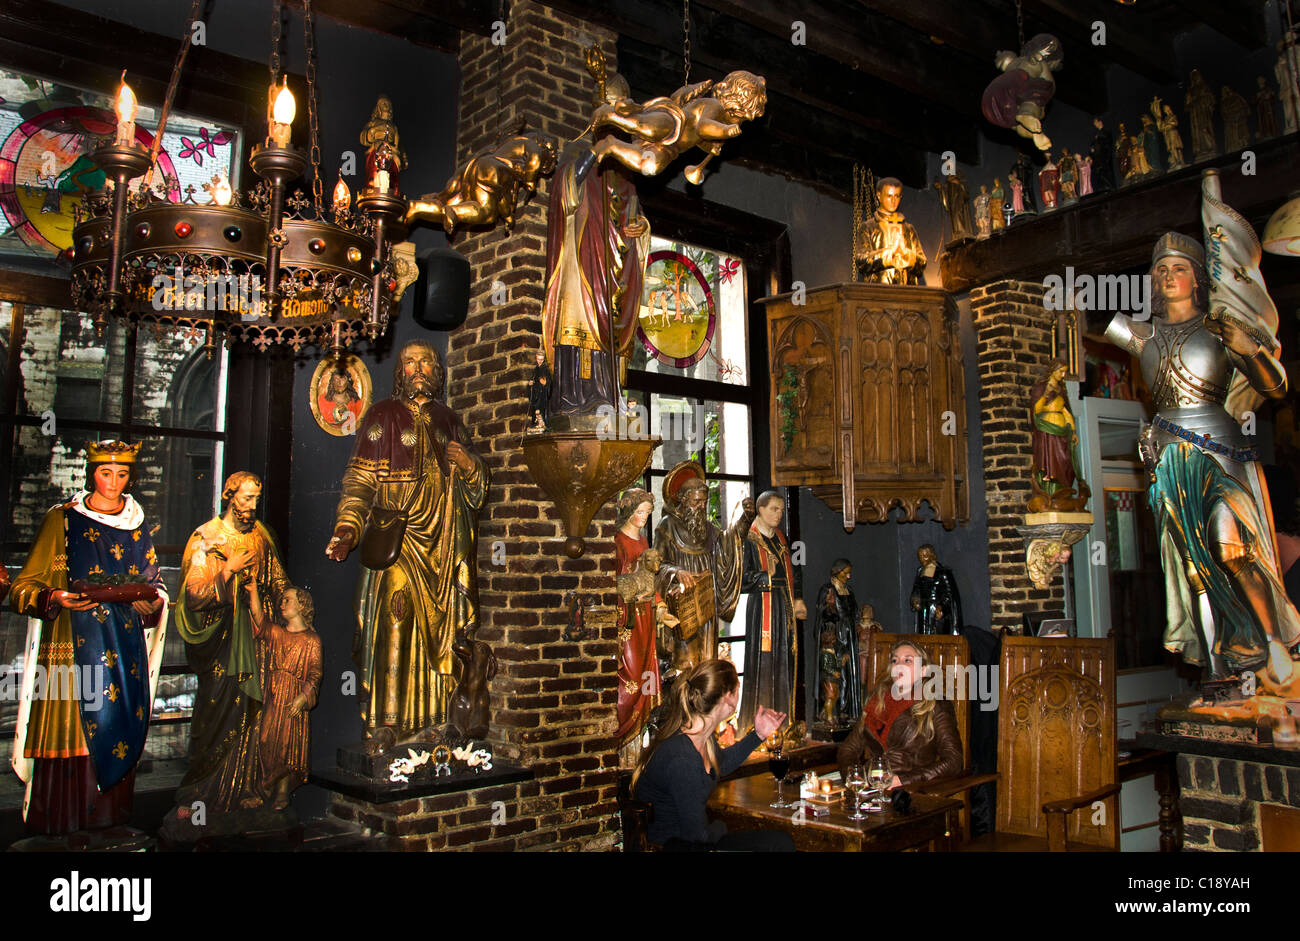 Antwerp bar Het Elfde Gebod The Eleventh Commandment 400 sacred images 16th century Cathedral Café Belgium - Stock Image